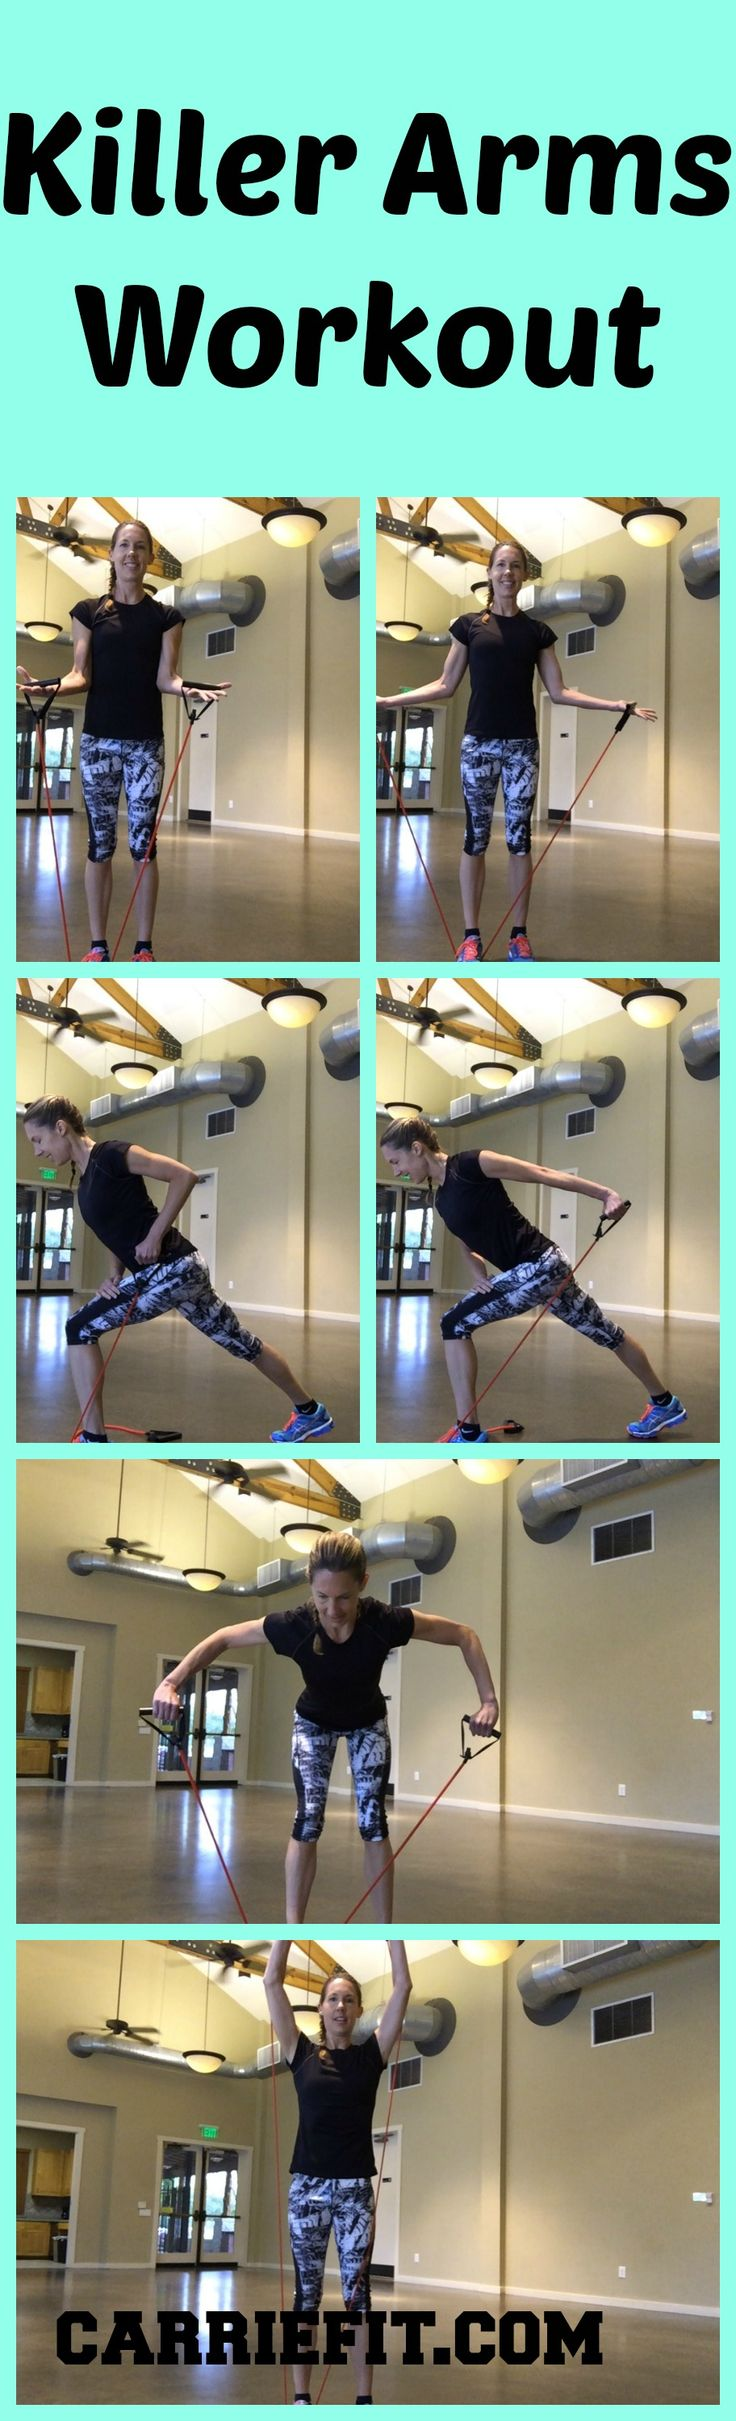 Killer Arms workout with a strength band. Click the image for details